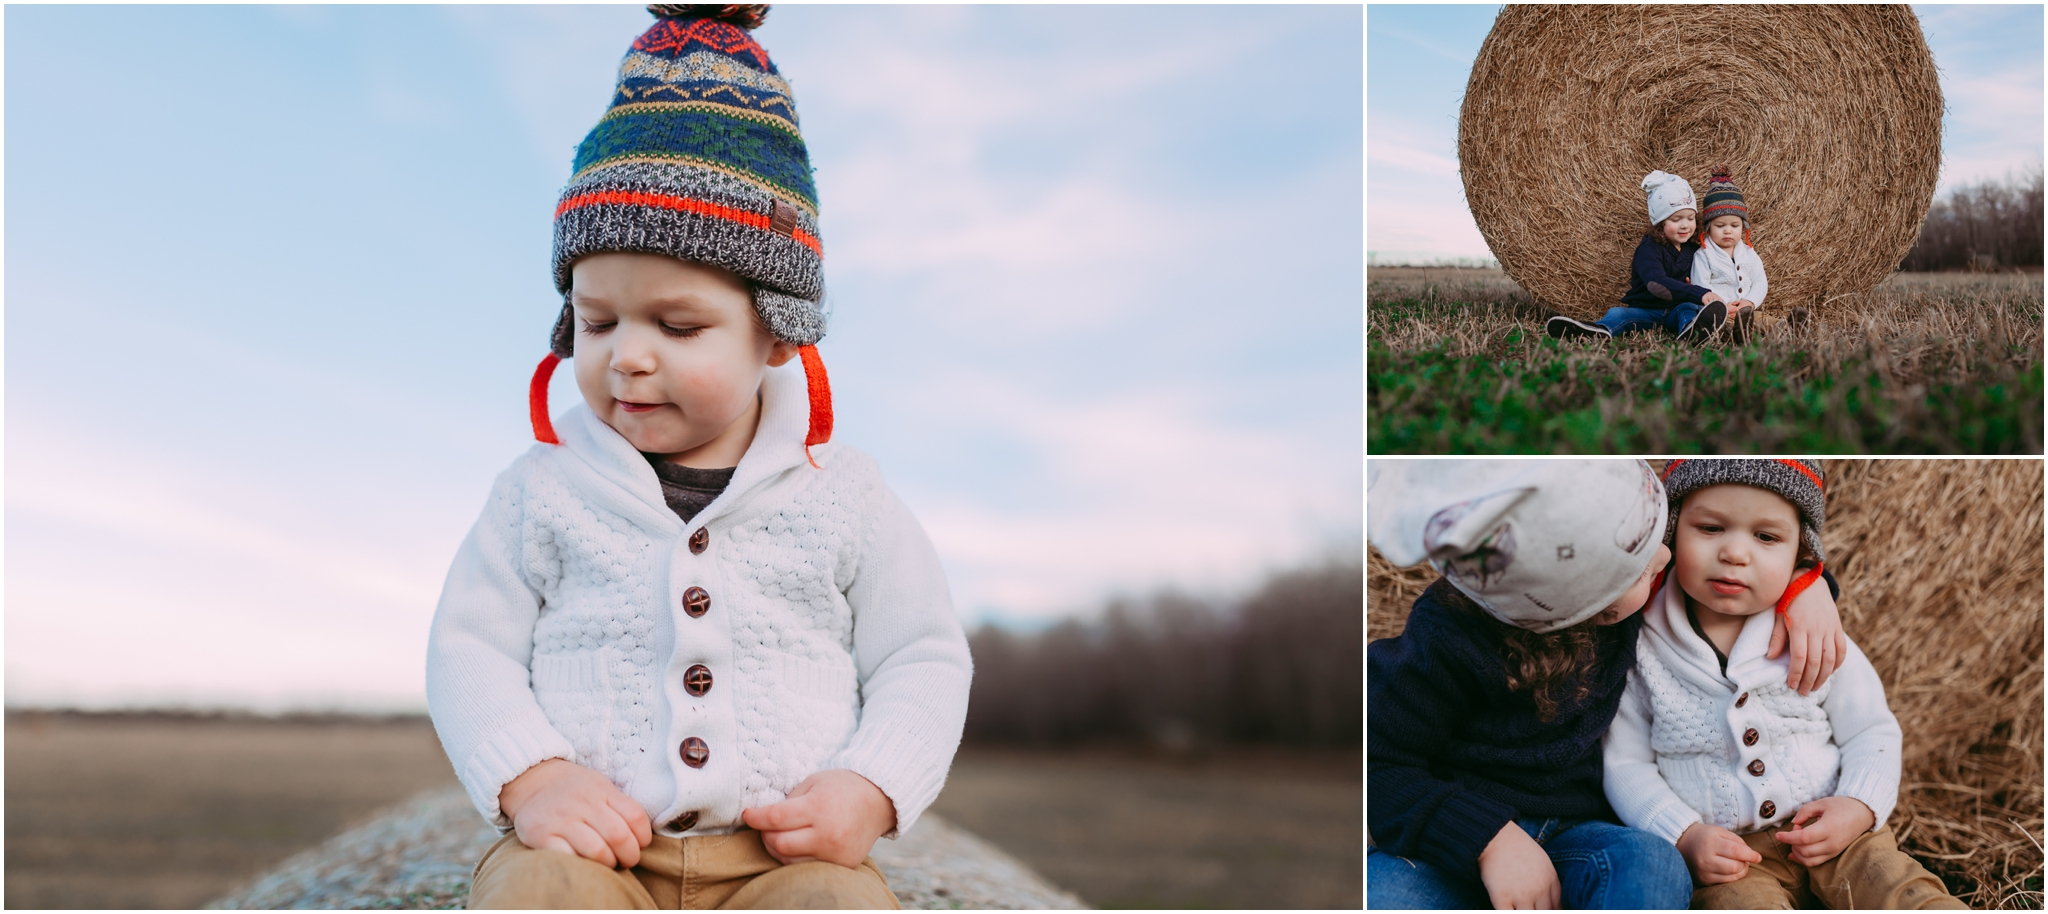 Edmonton Children Photographer - Best of 2016 - Brothers - Family Session - Hay Bales